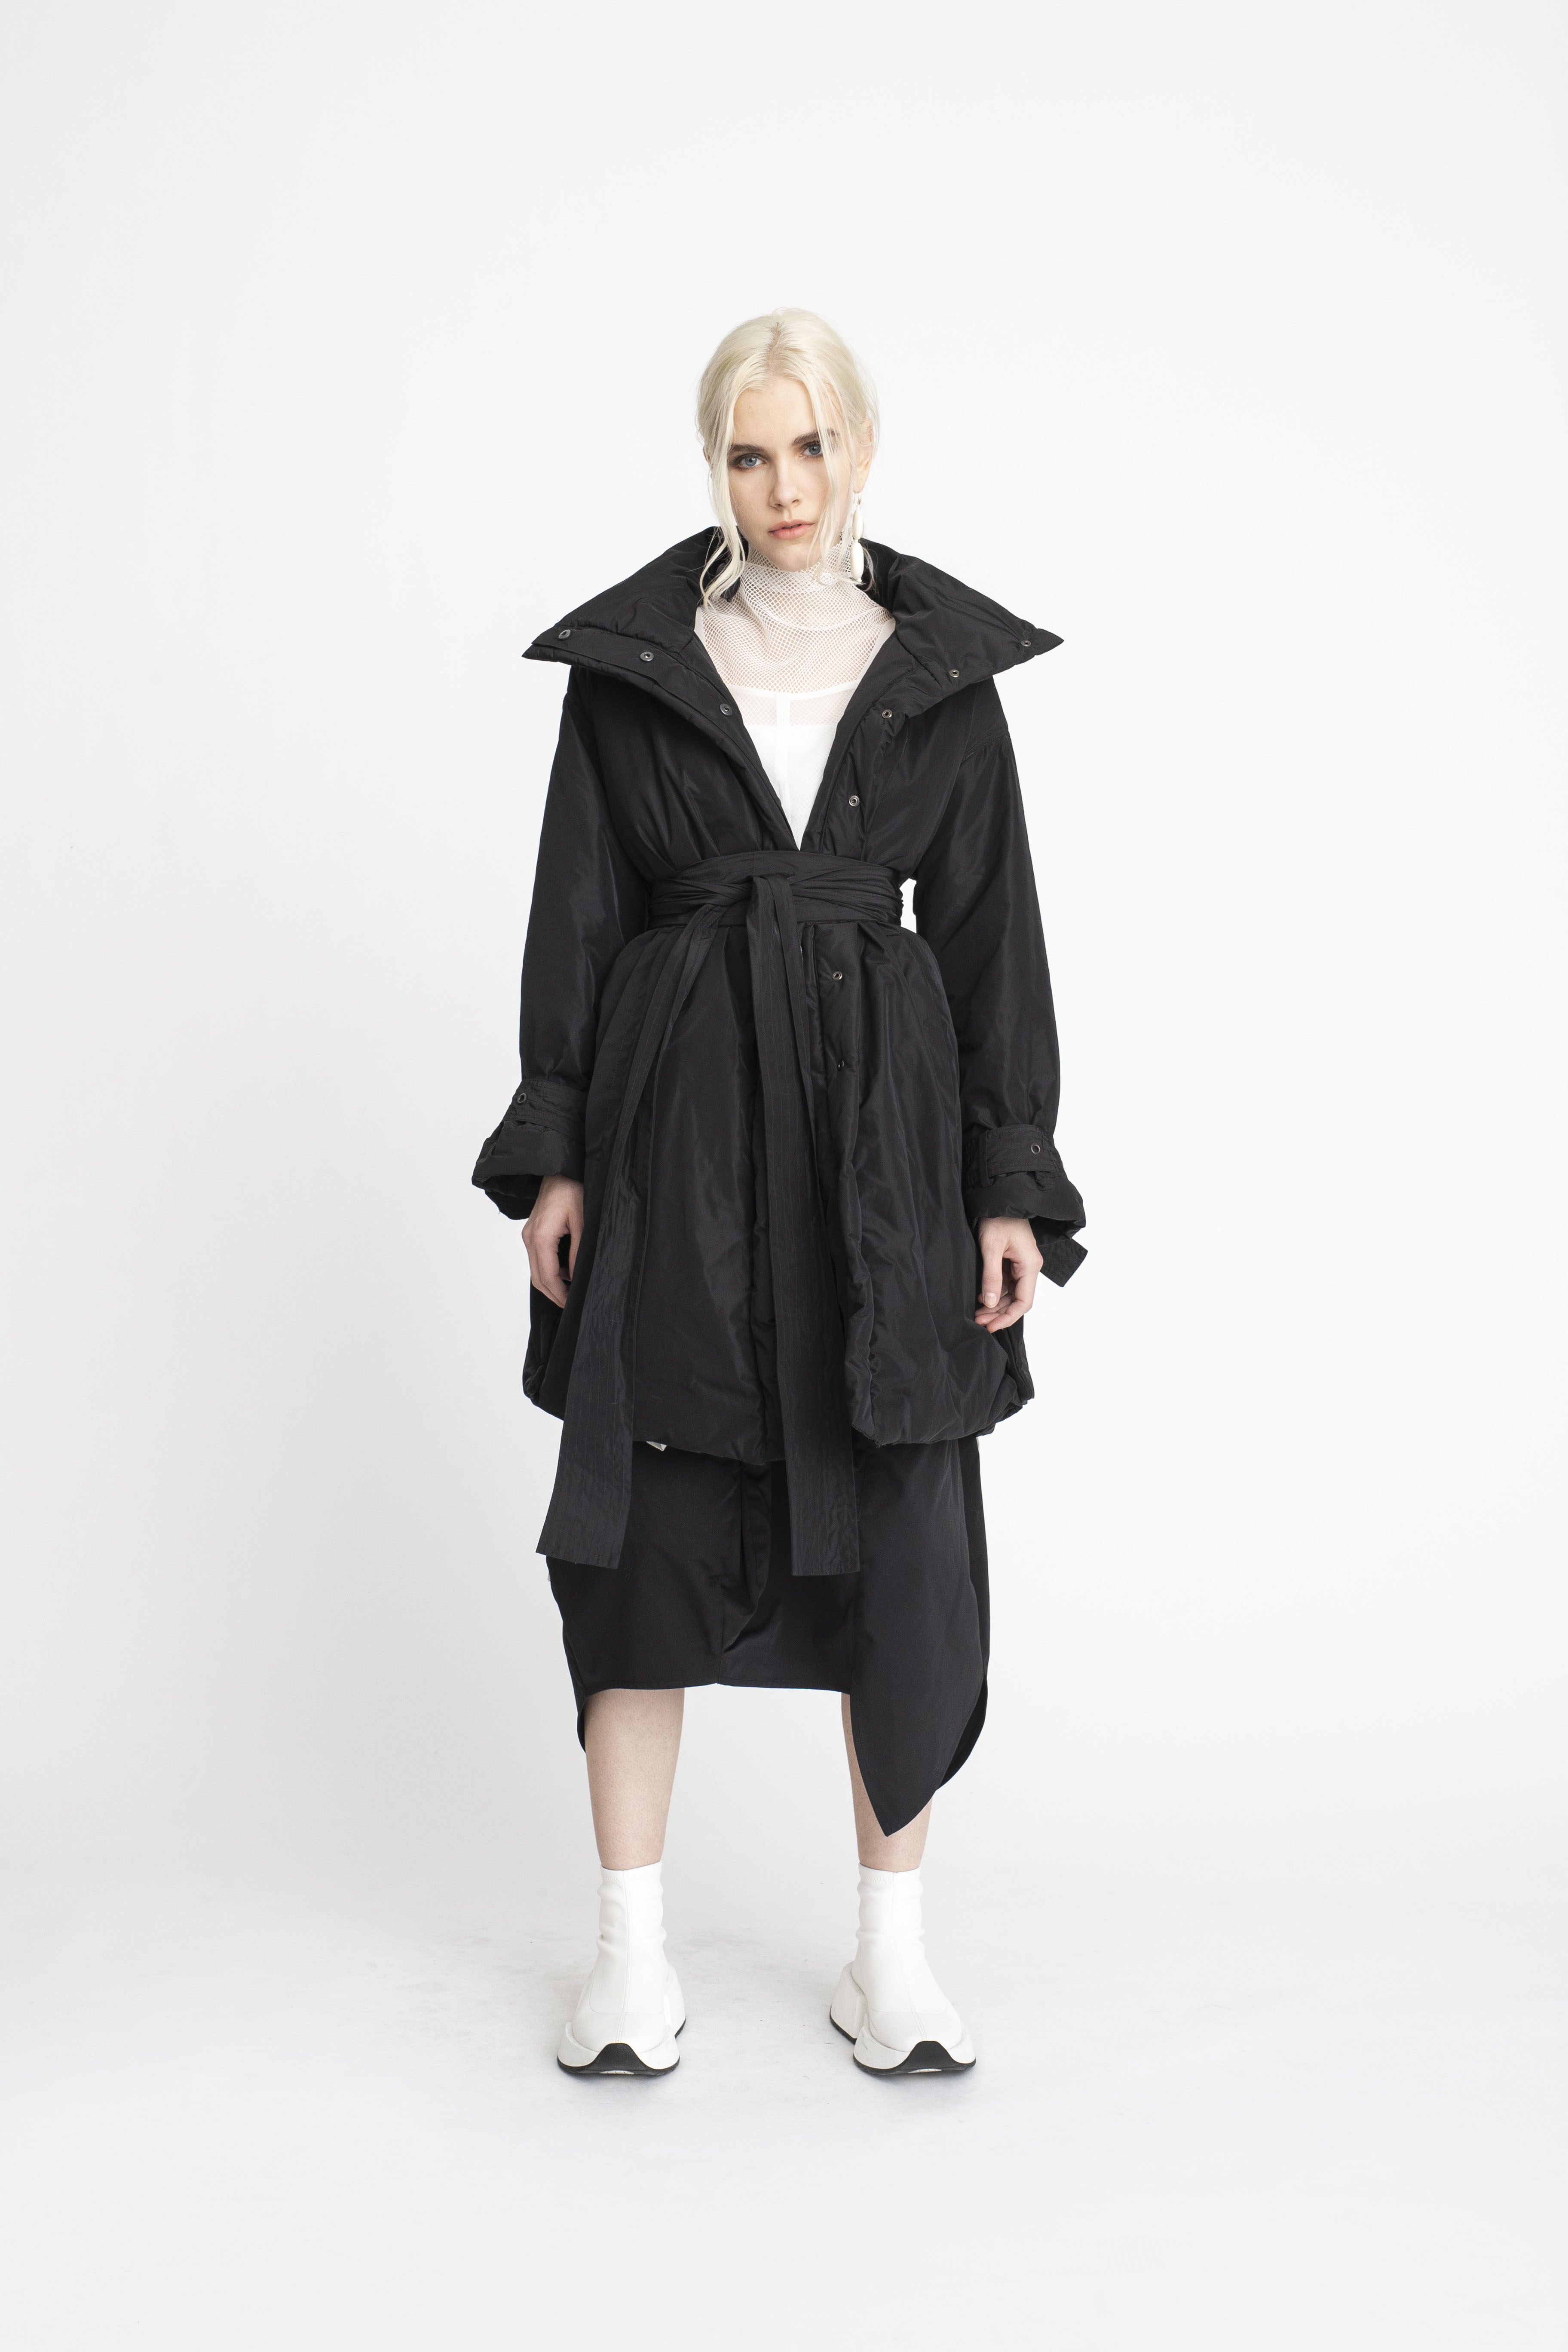 Subsection-Coat_Swivel-Tunic_Scope-Skirt_Undone-Tunic_TaylorBoutique_AW19_L76_1819 2